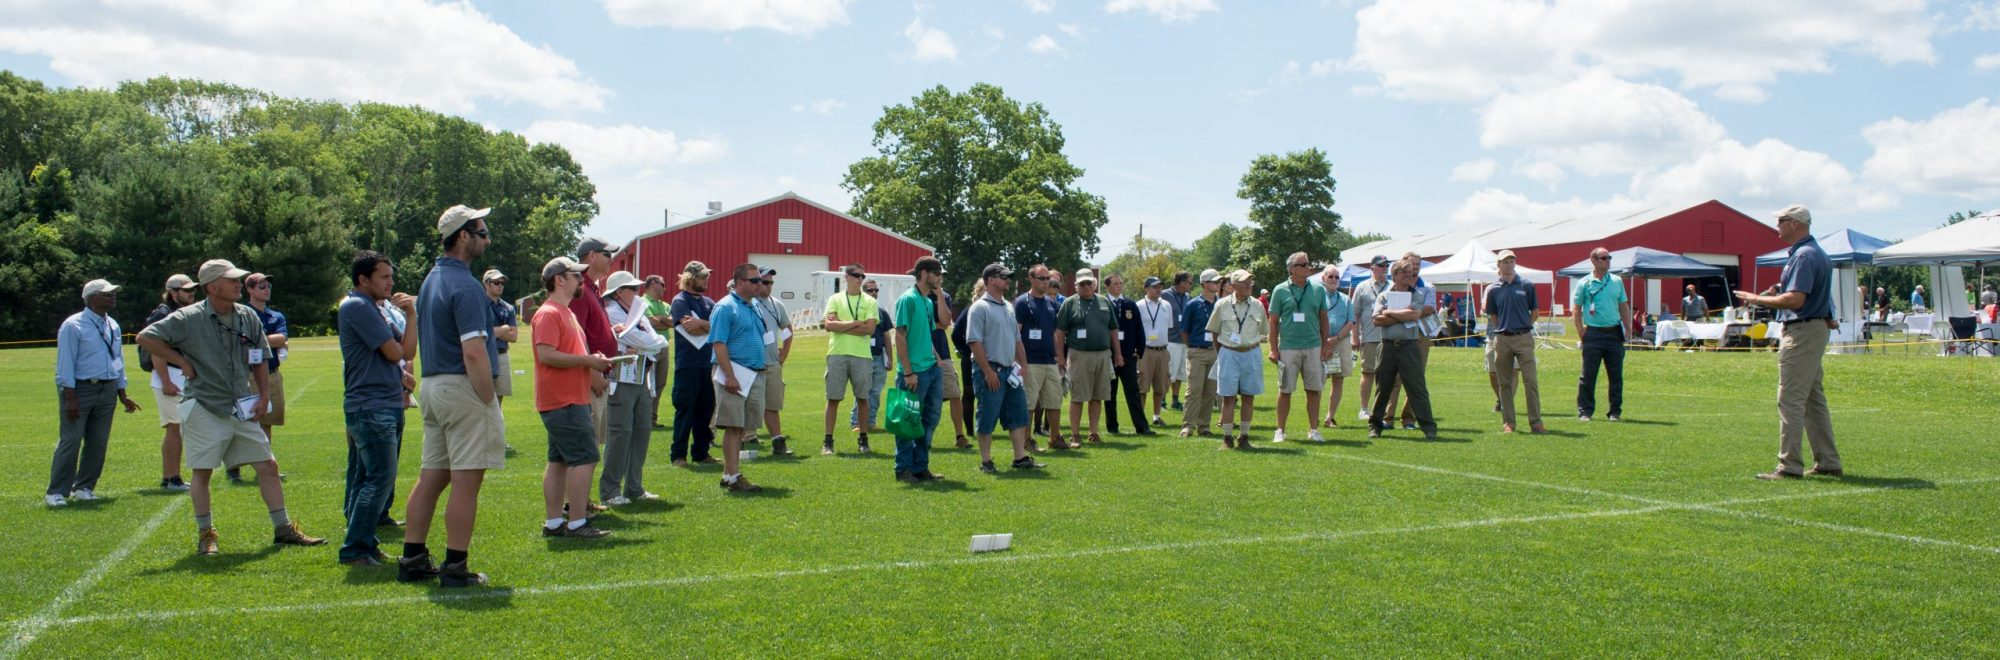 turfgrass field day participants listen to Dr. Jason Henderson